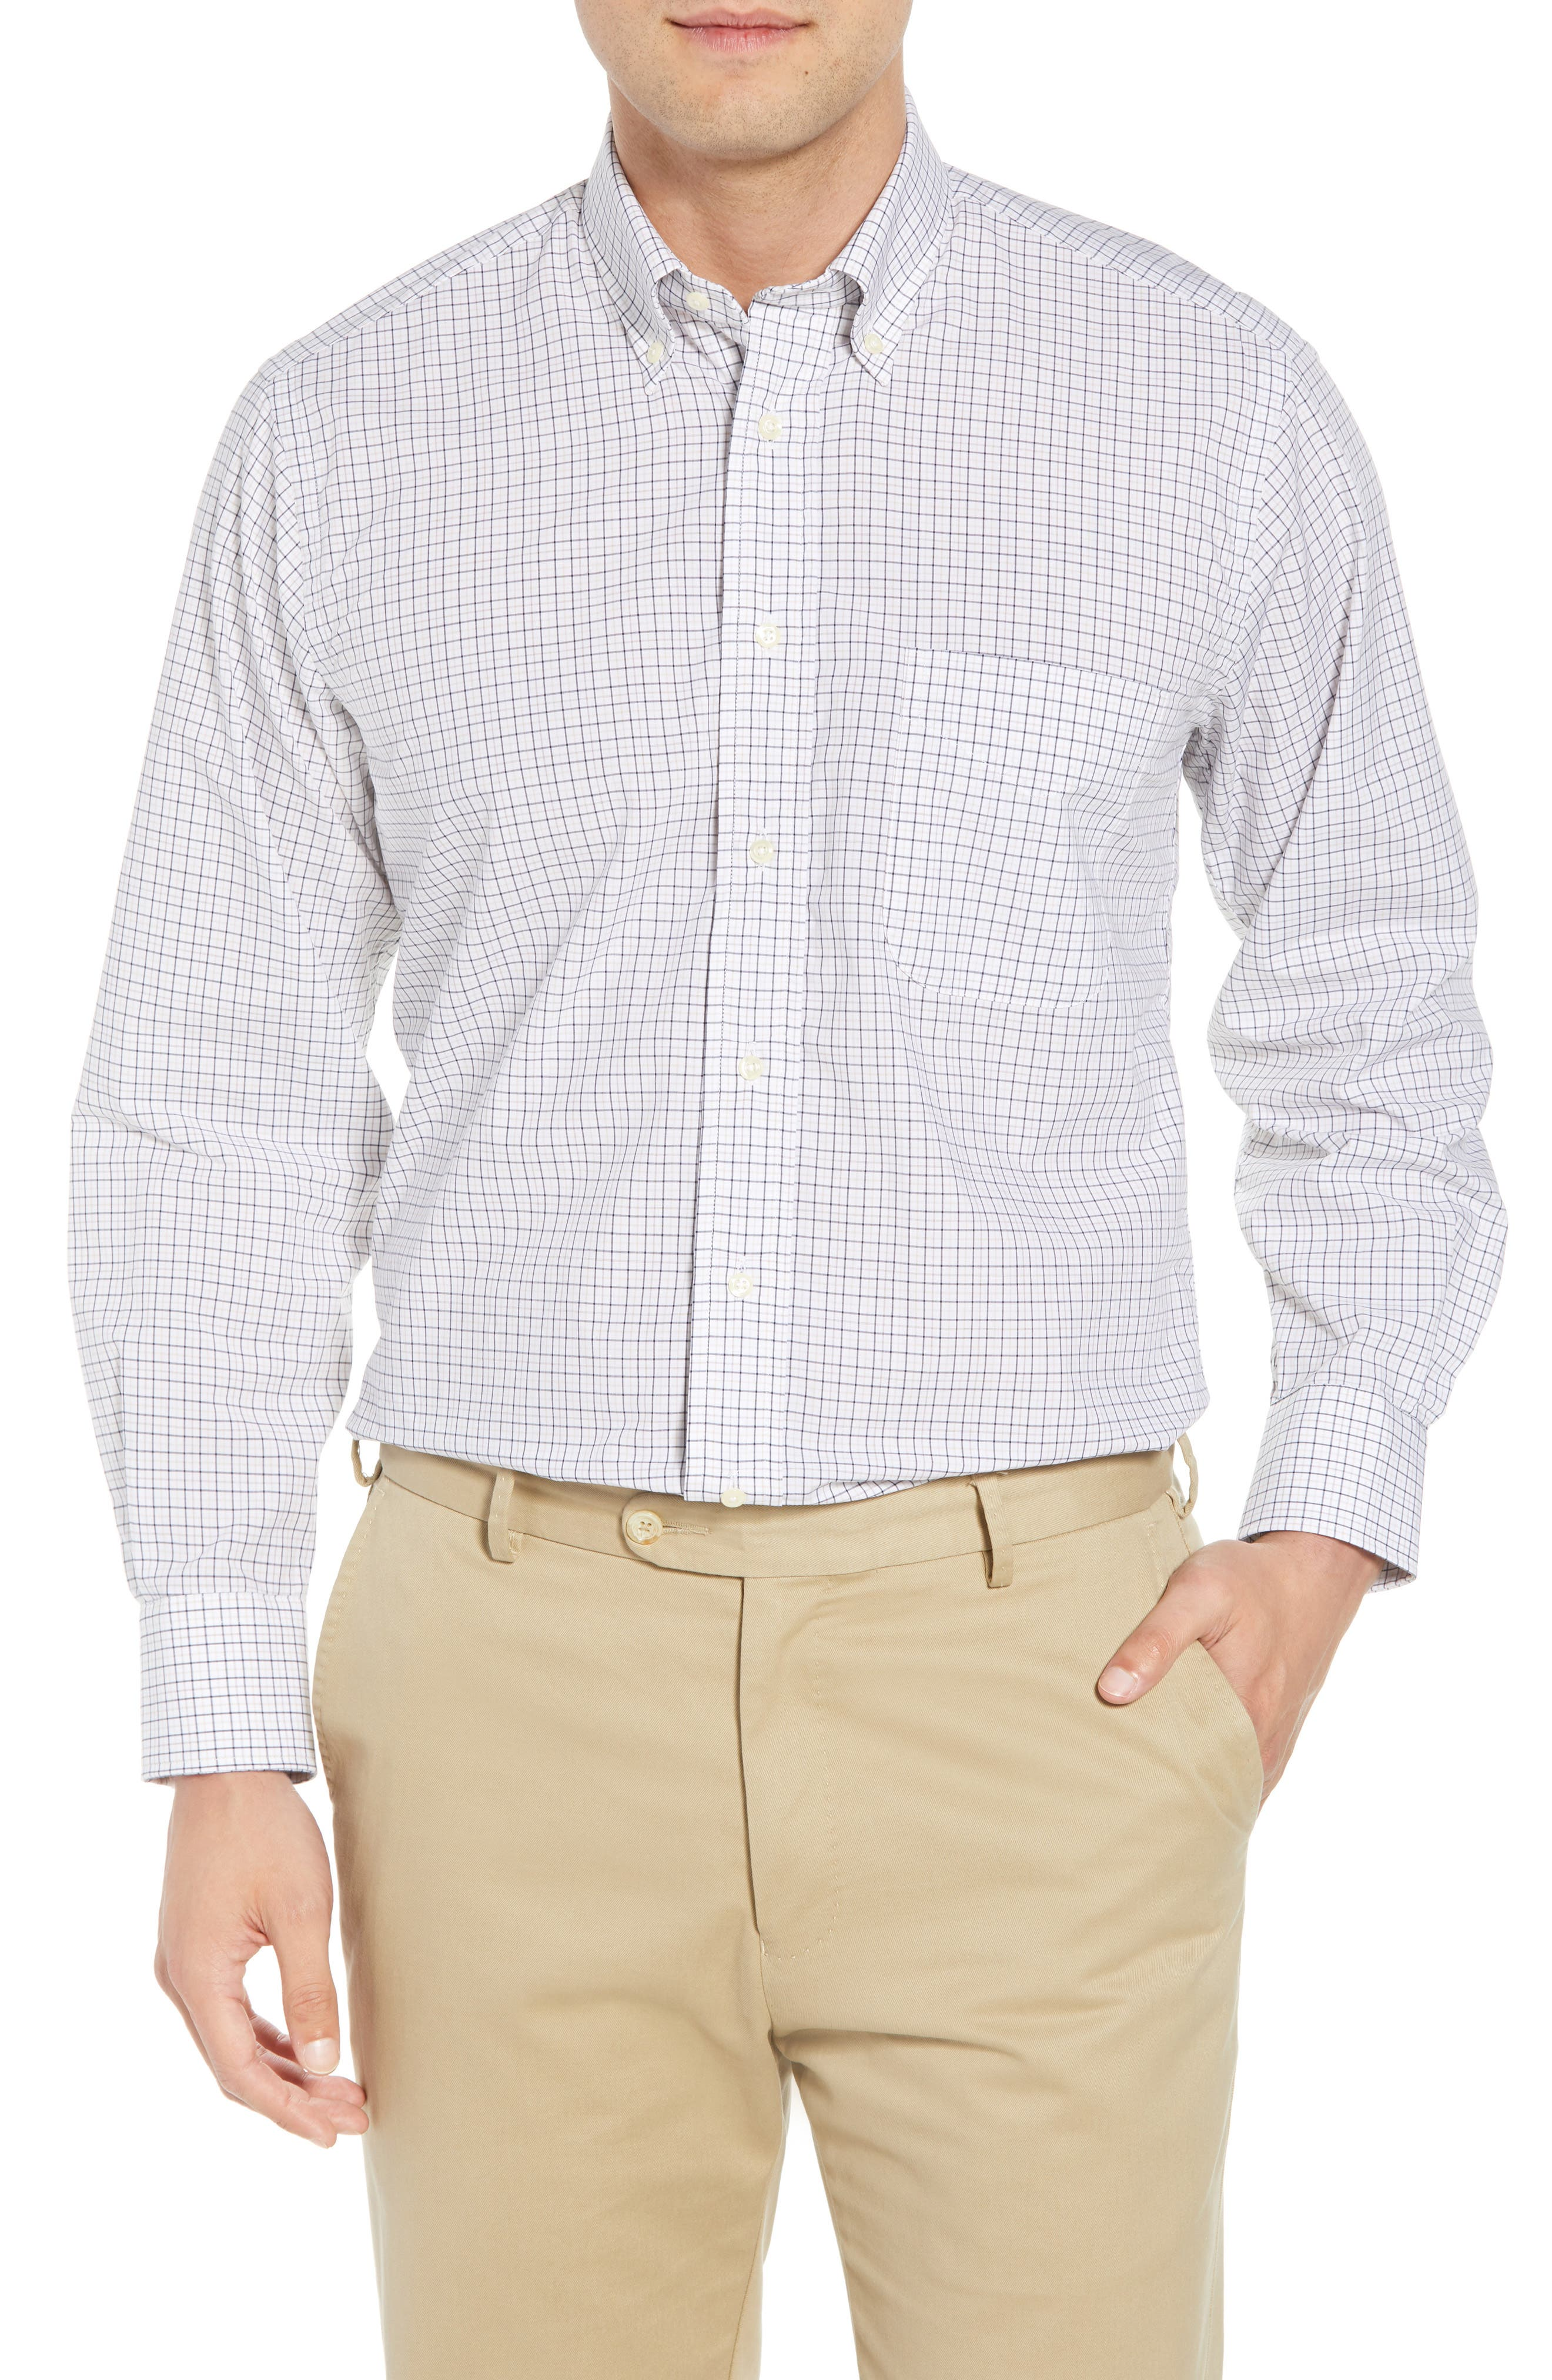 Tailored Fit Check Dress Shirt,                         Main,                         color, White/ Blue